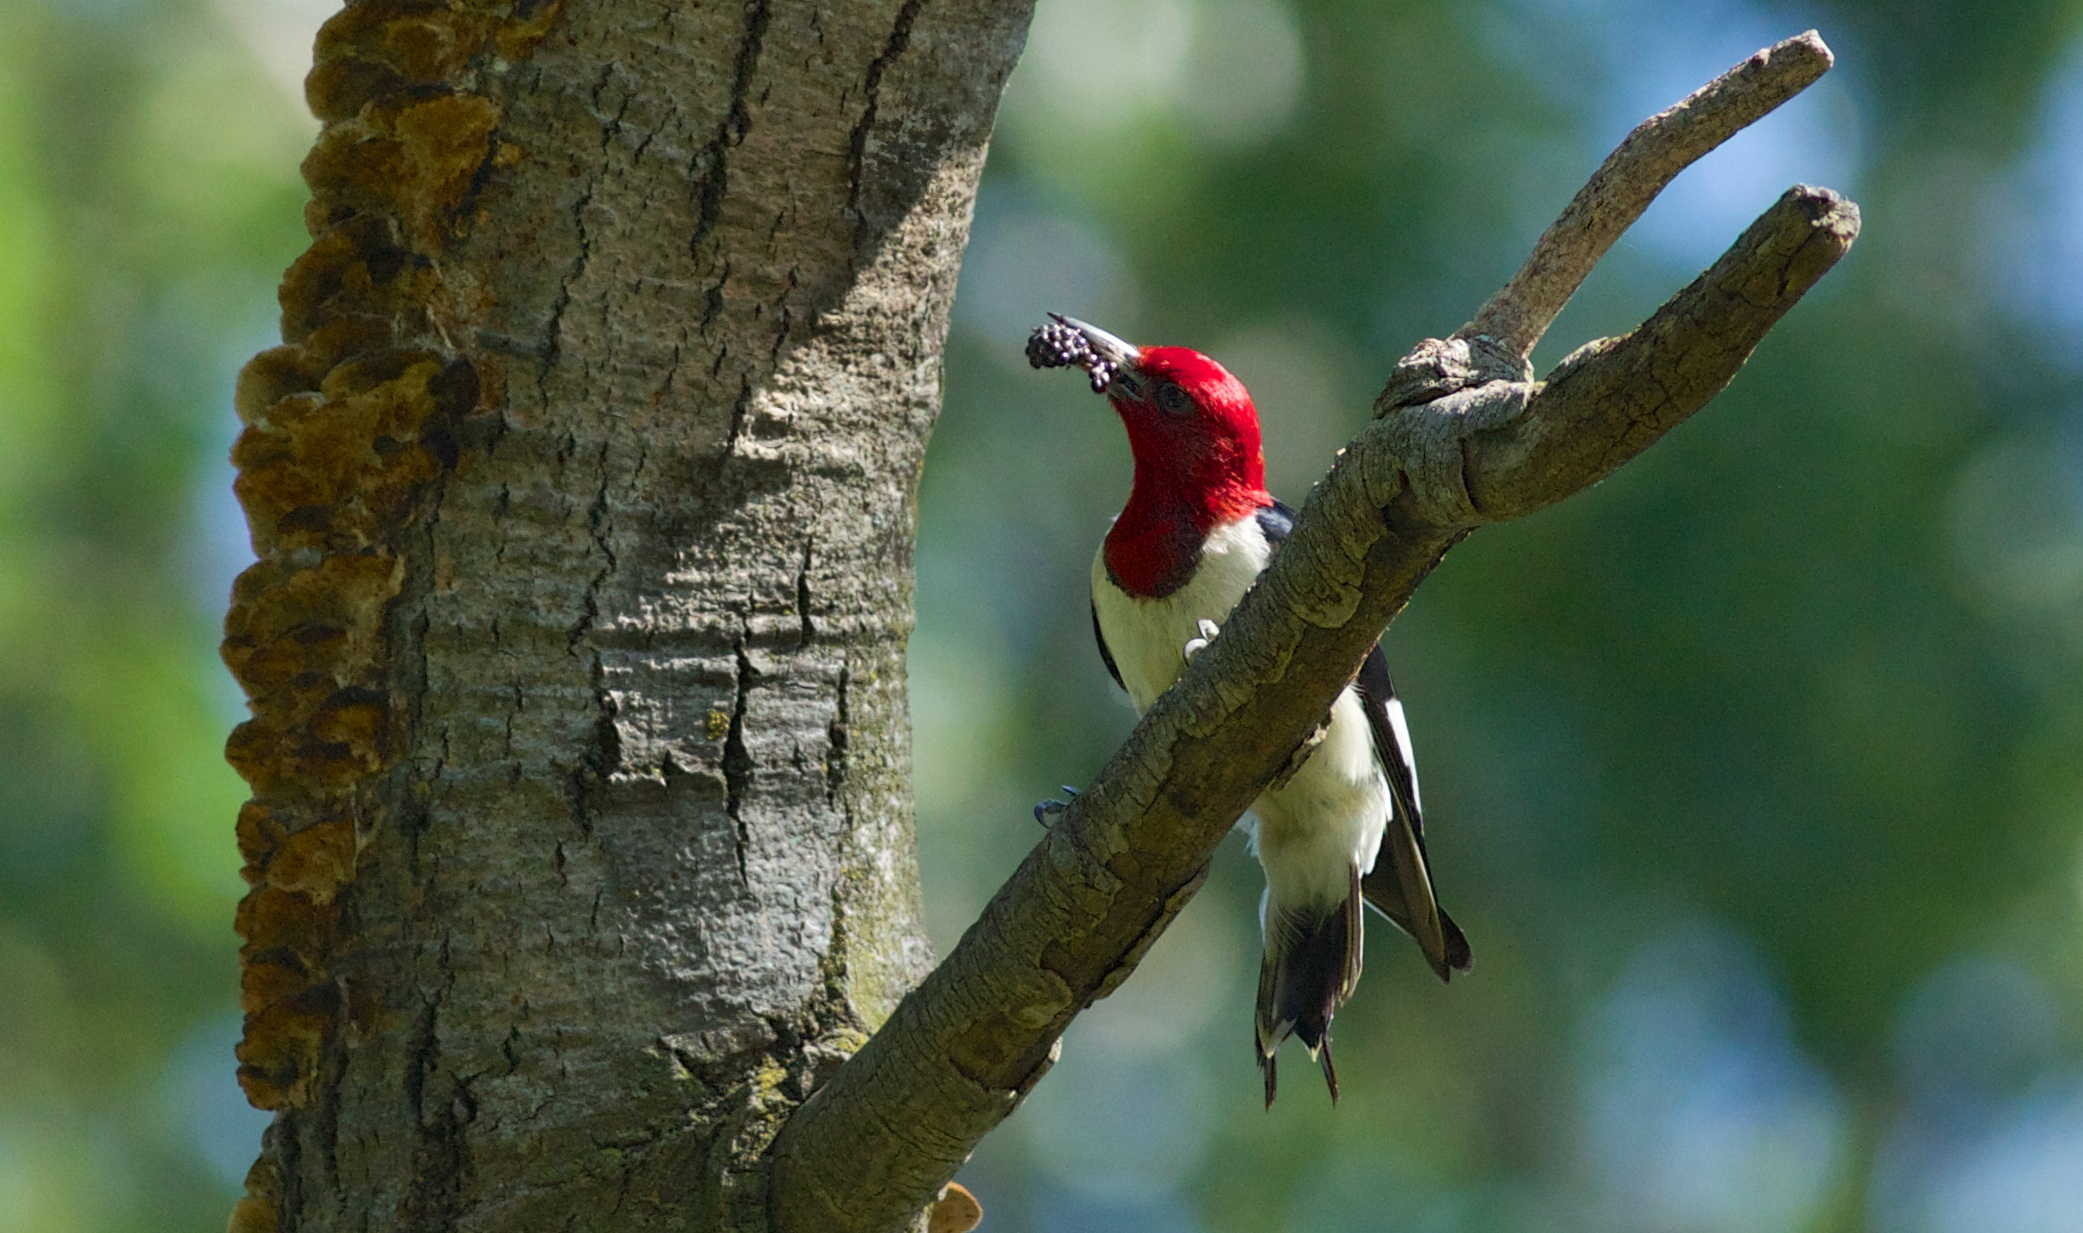 Red-headed woodpecker, photo by Arlene Koziol